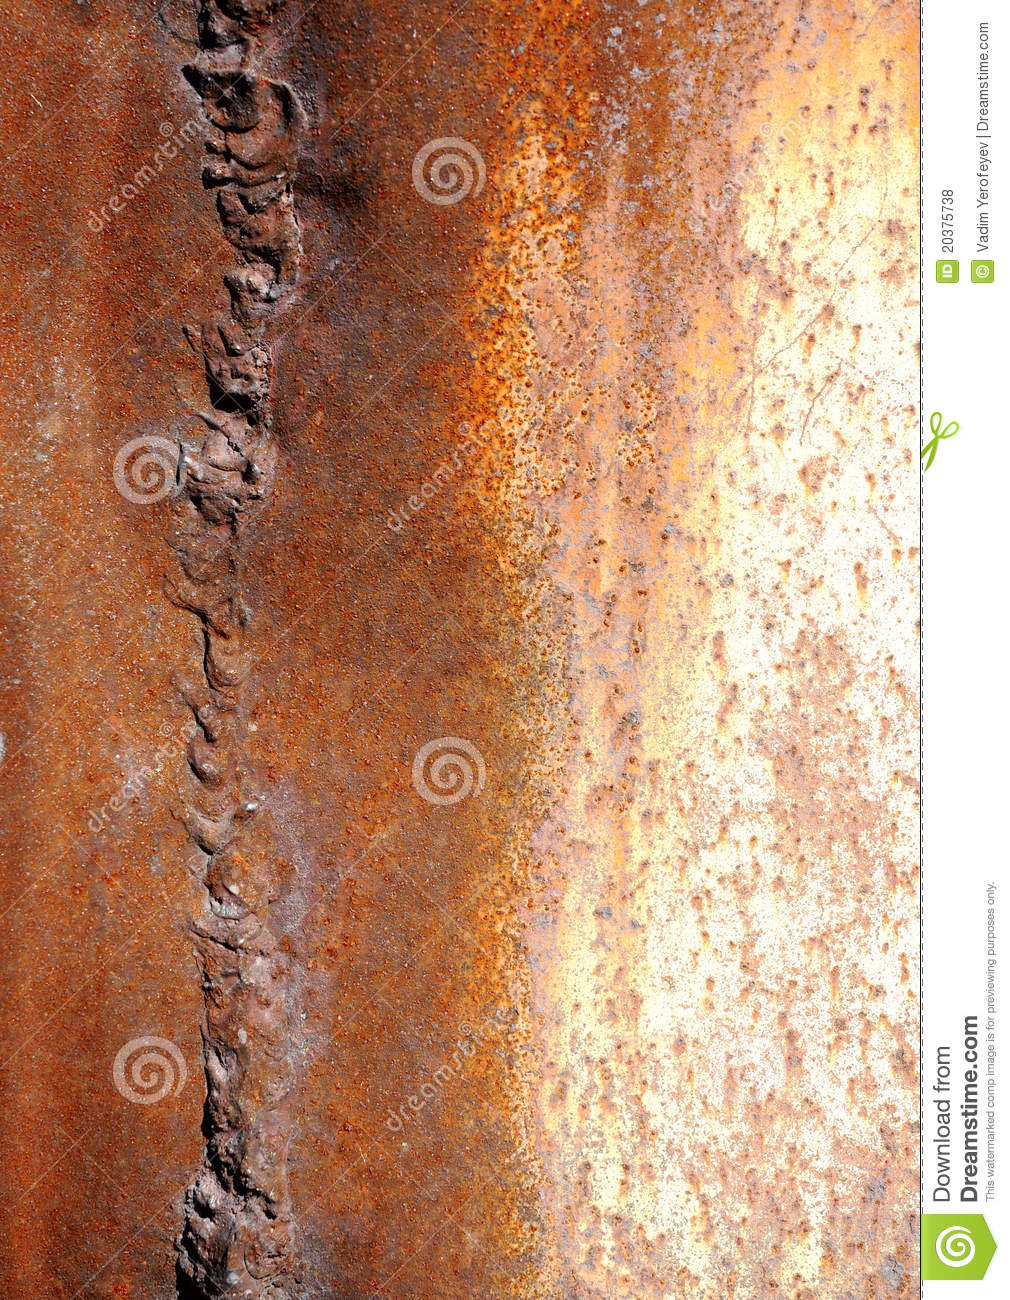 old rusty metal free - photo #23